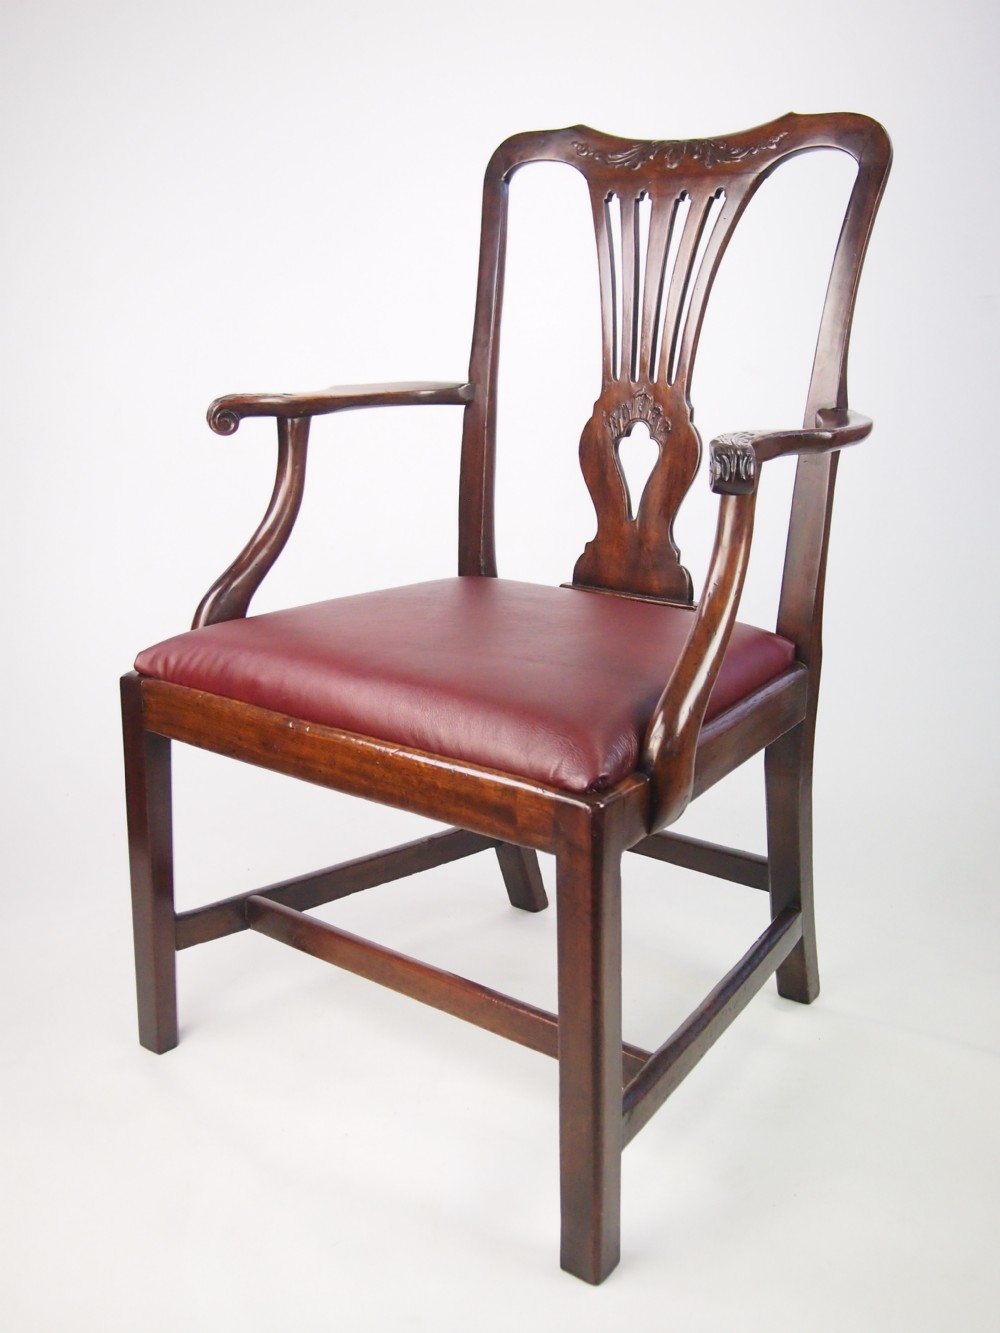 Antique George Iii Desk Chair With Leather Seat